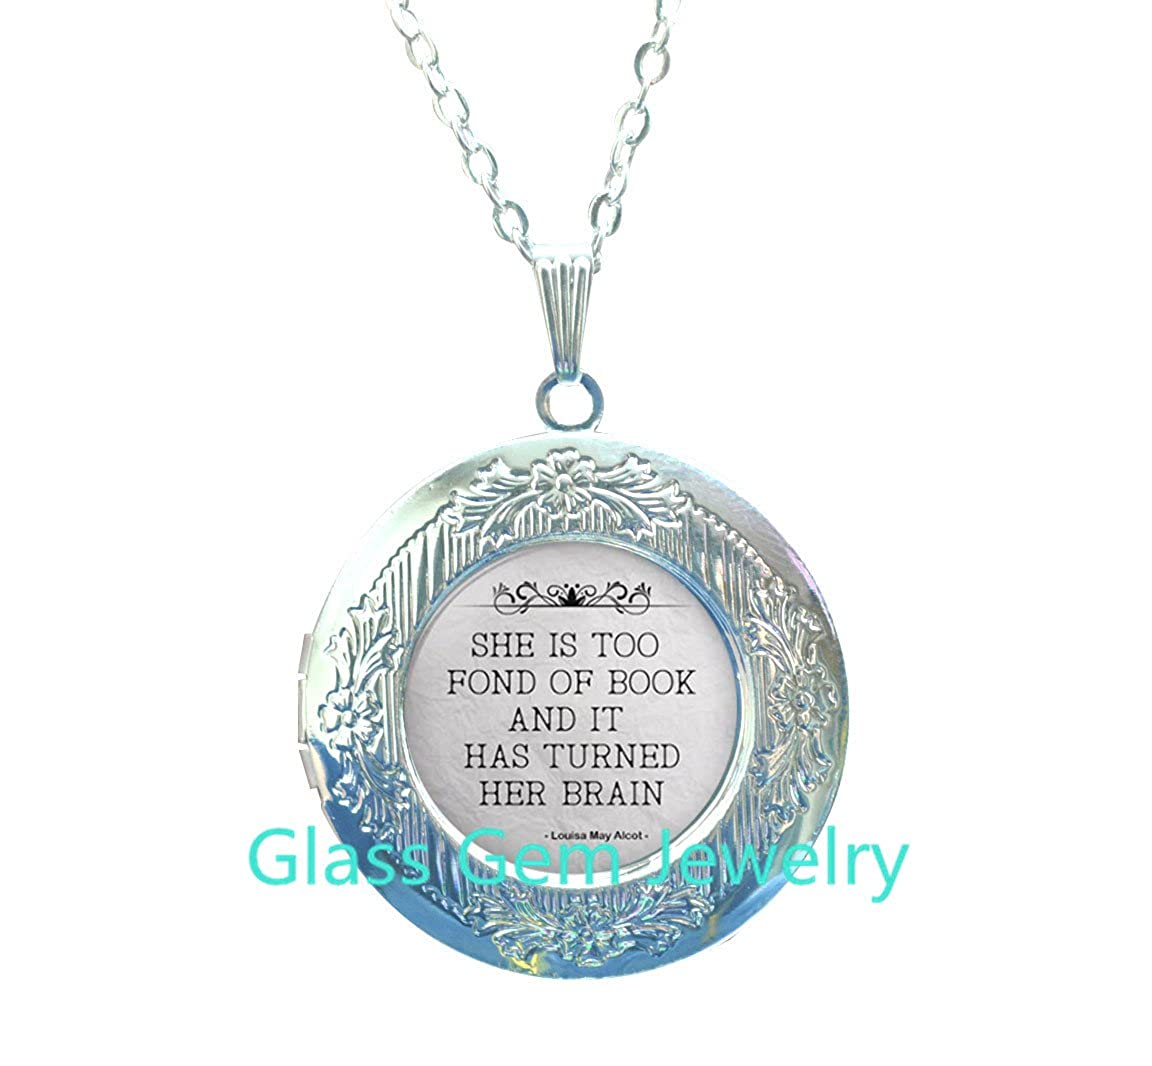 She is too fond of books quote louisa may alcott Locket Necklace alcott quote alcott book quote book lover gift writer jewelry author jewelry,Q0191